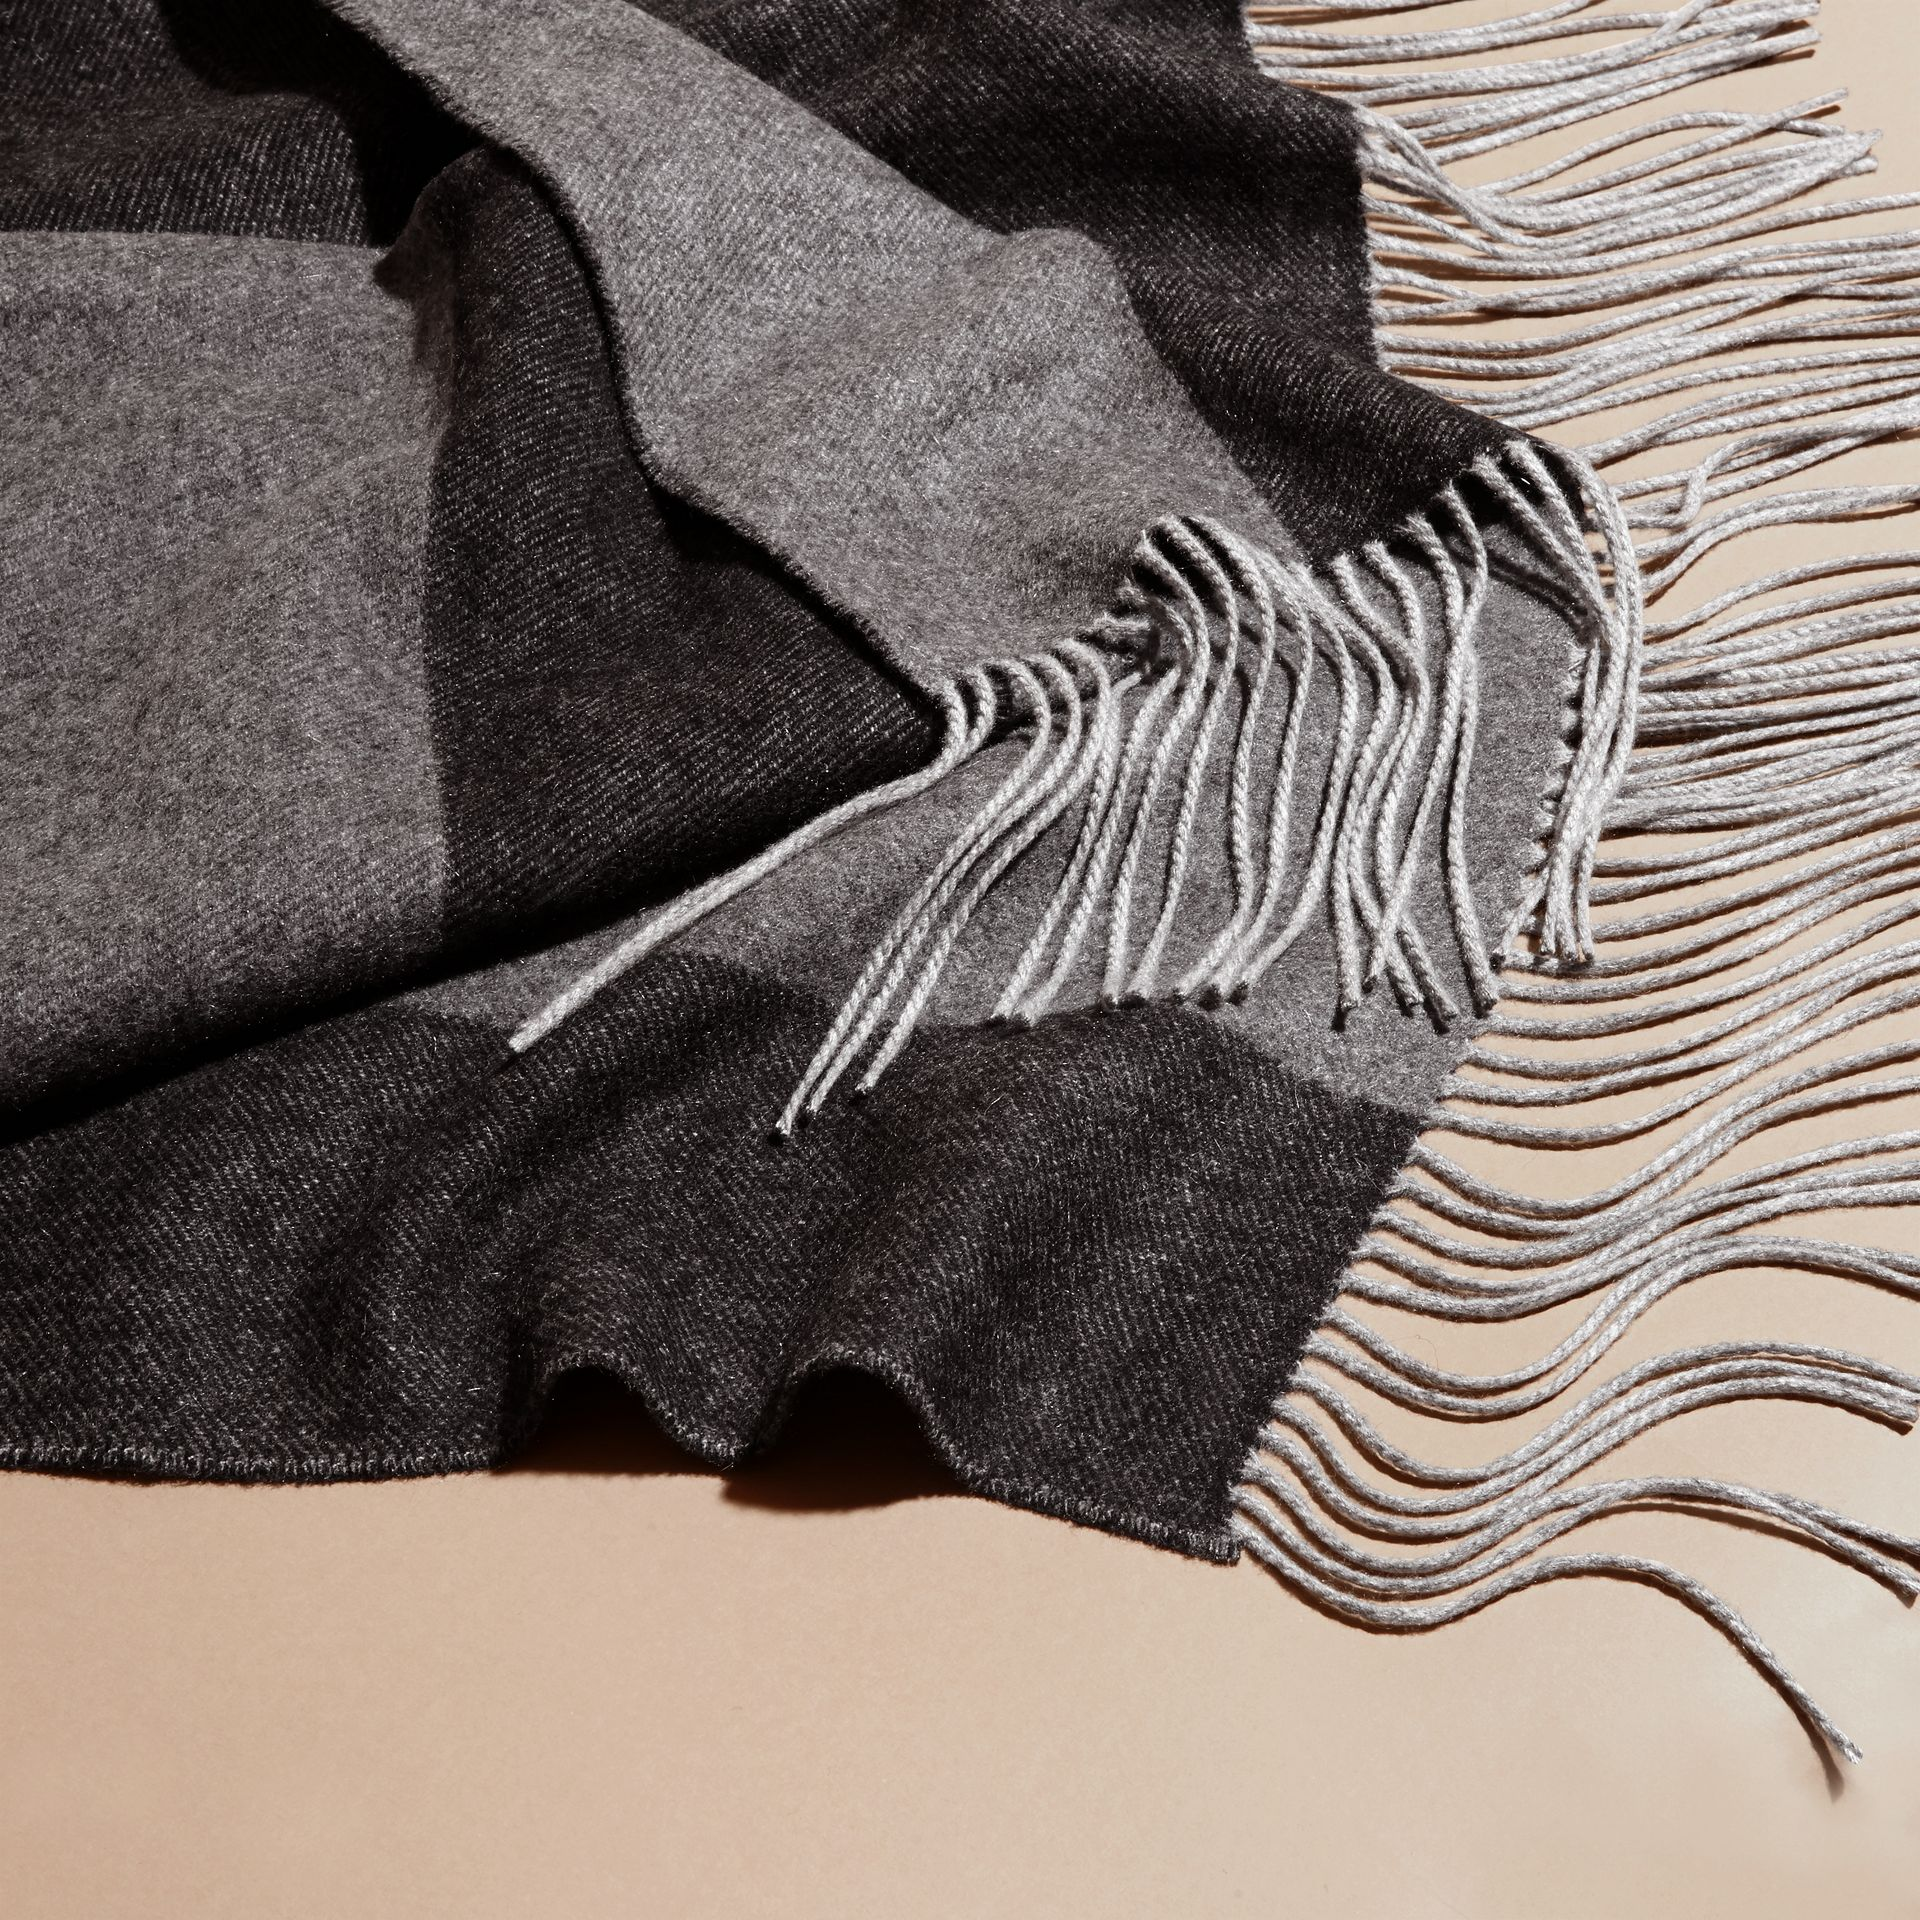 Charcoal Oversize Striped Cashmere Scarf Charcoal - gallery image 2